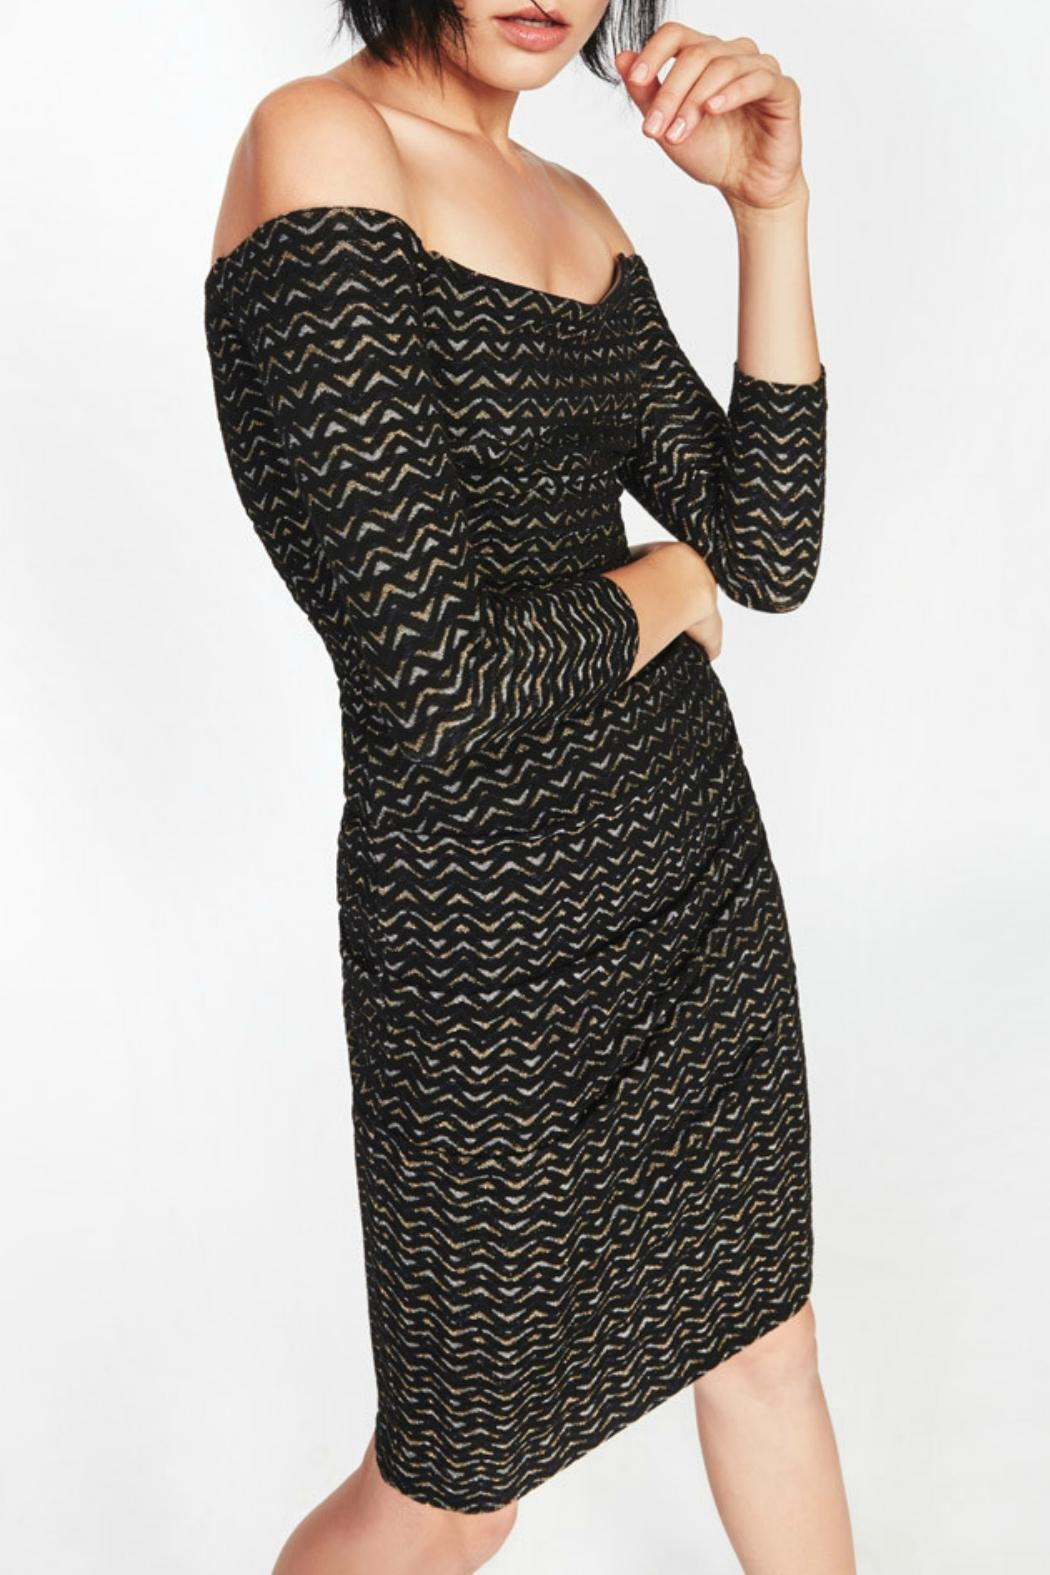 Nicole Miller Gold Zig-Zag Dress - Front Cropped Image